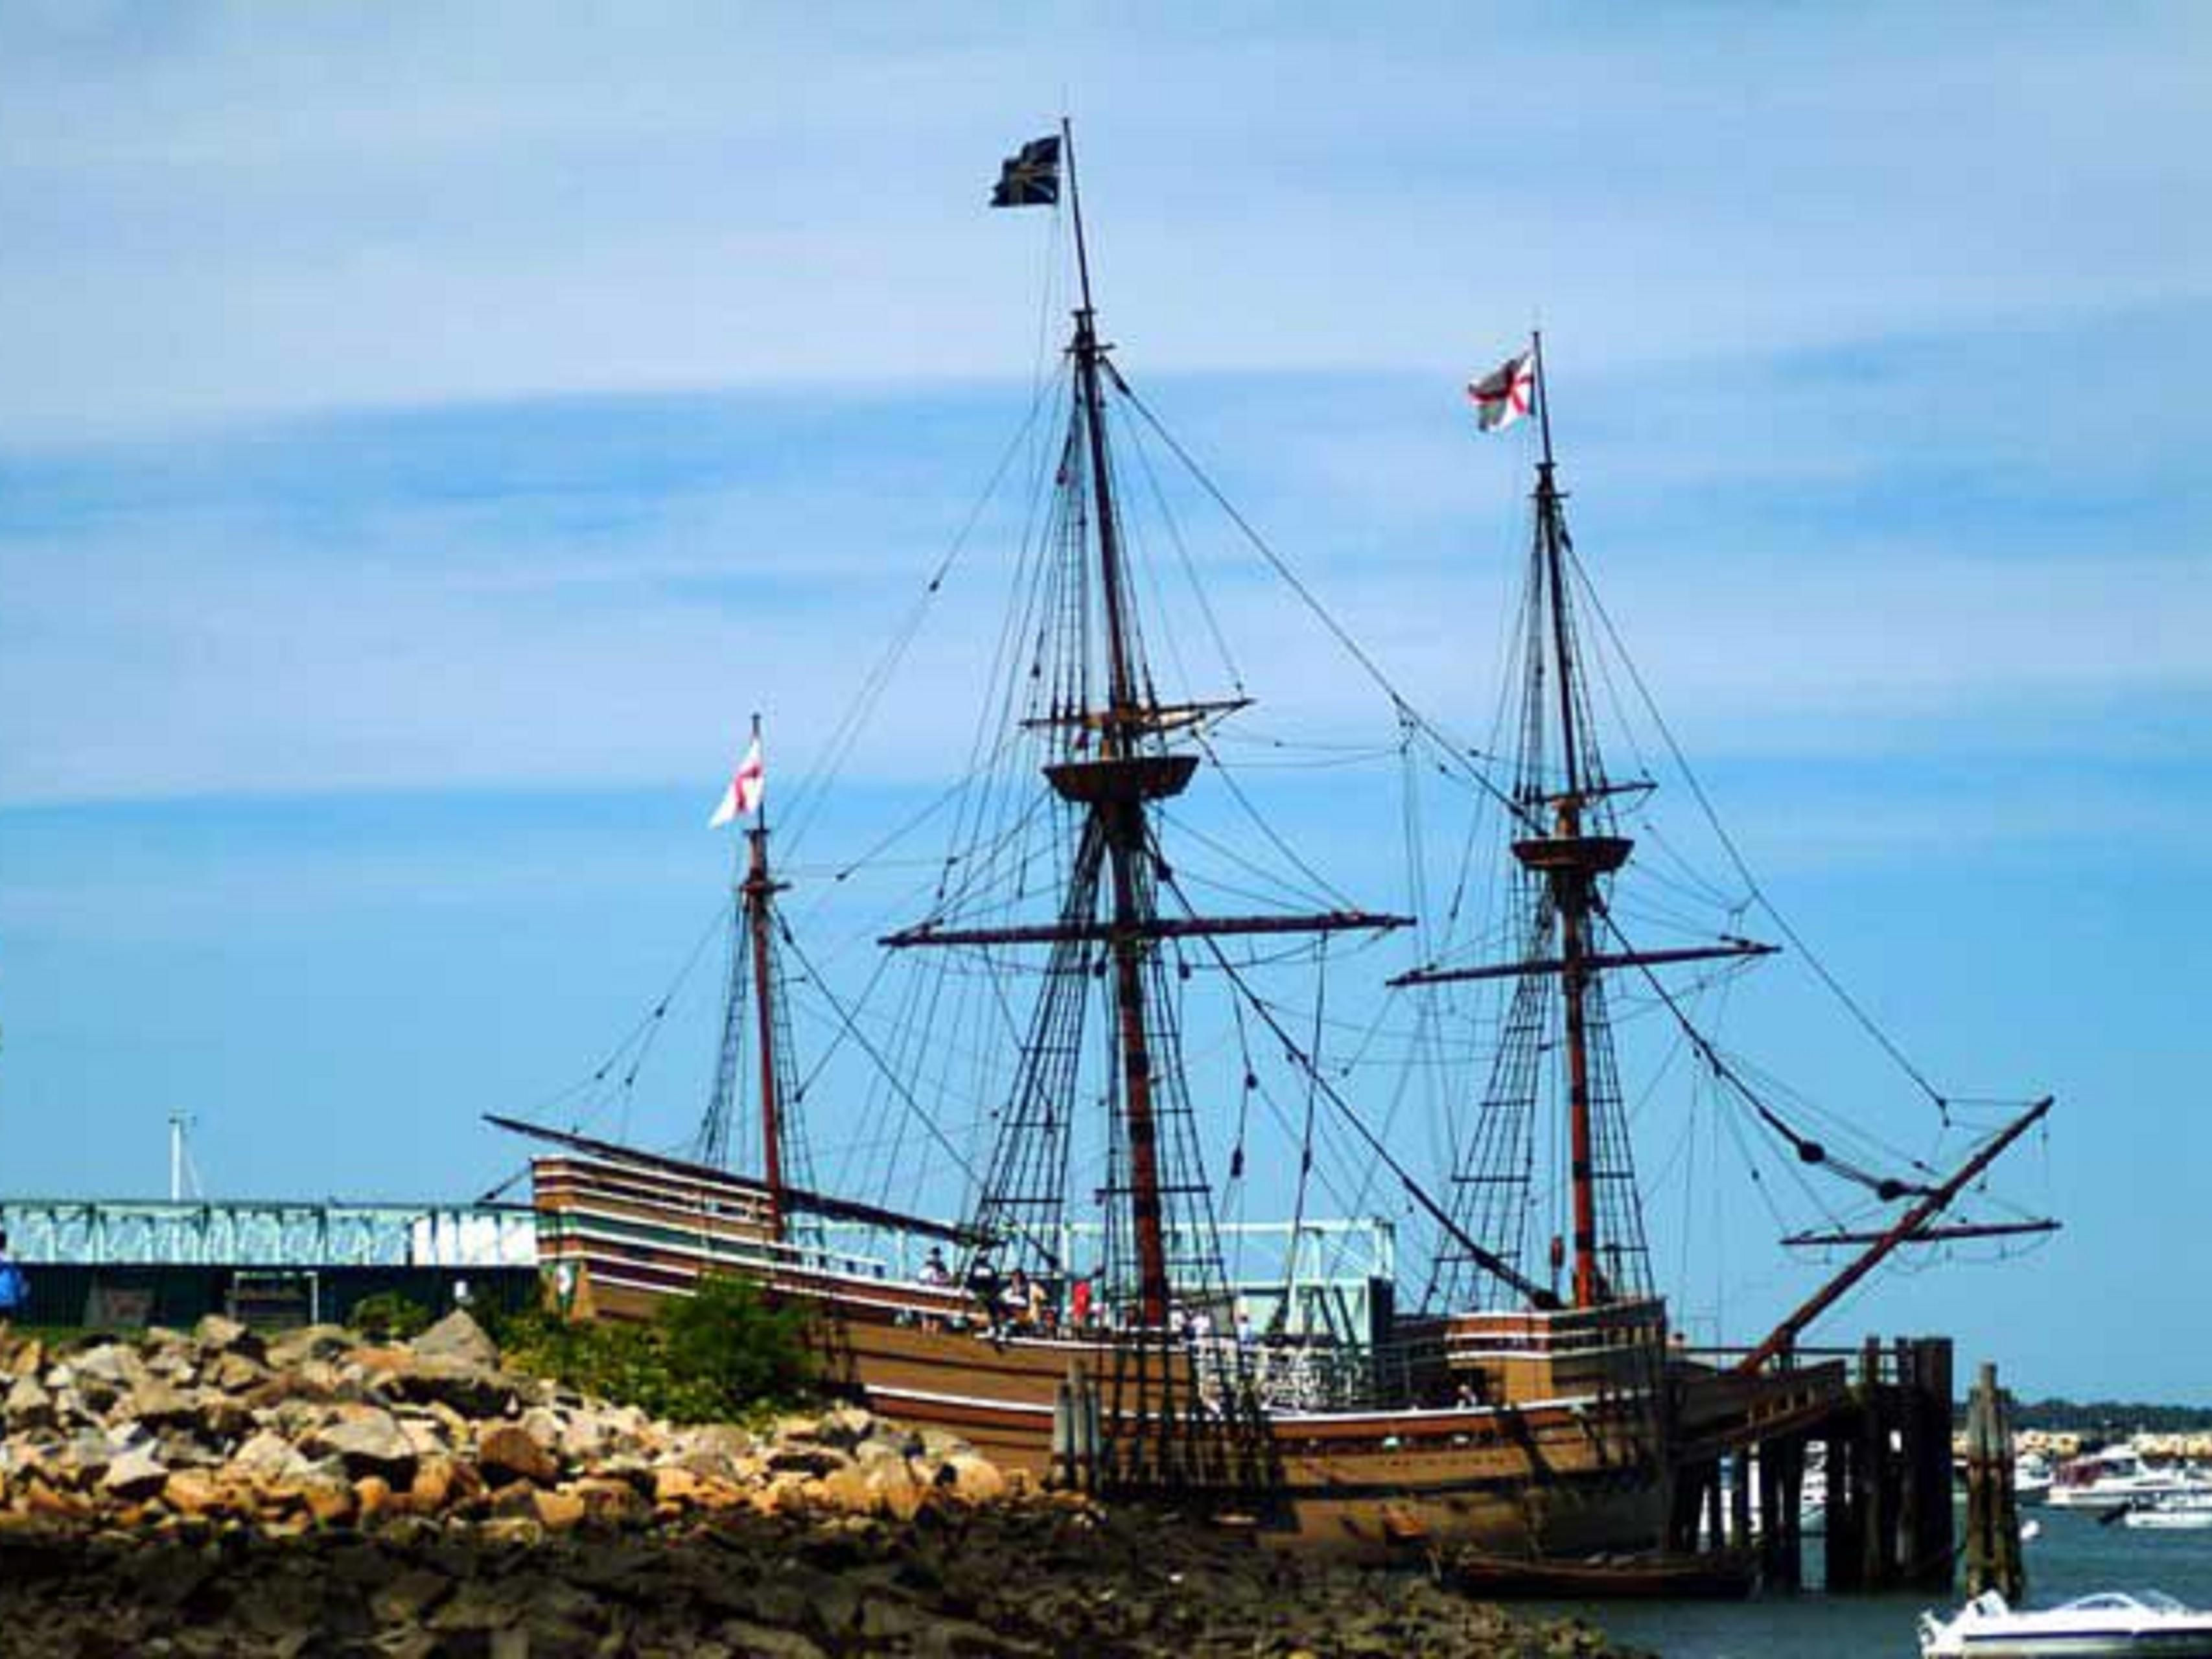 The Mayflower II resides in Plymouth Harbour